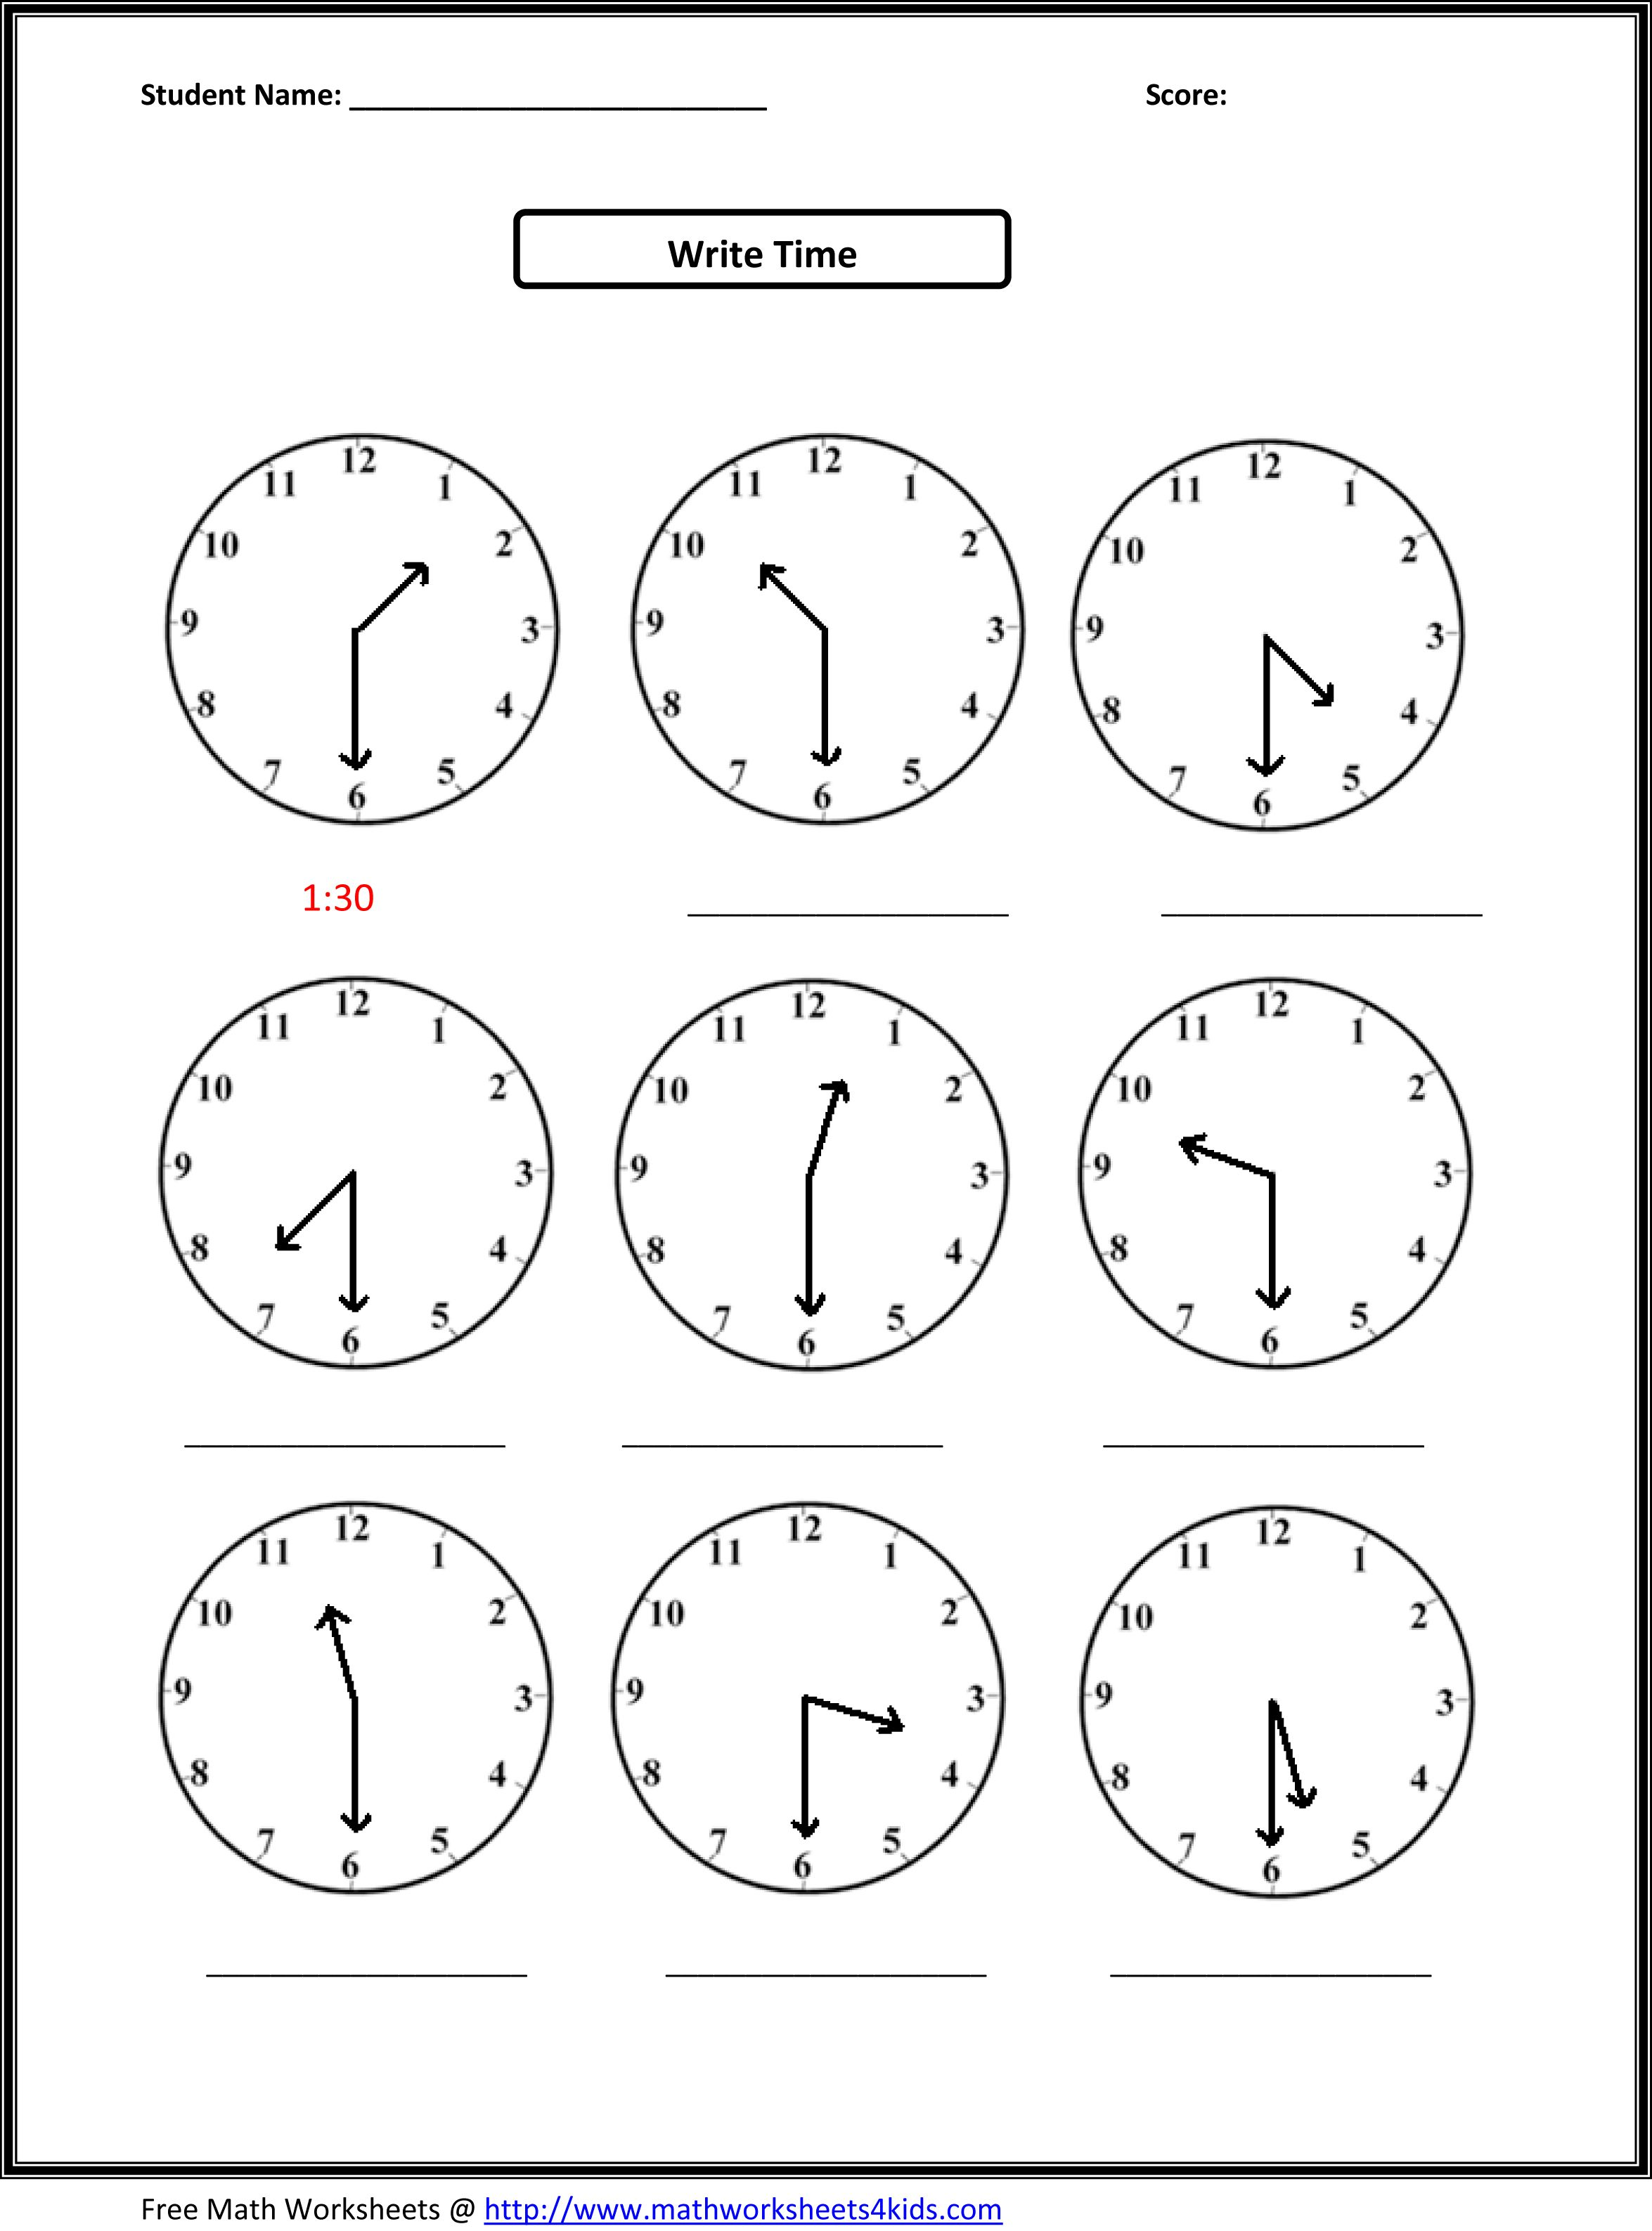 Proatmealus  Marvellous Worksheet On Time For Grade   Reocurent With Excellent Free Printable Telling Time Worksheets Nd Grade  Reocurent With Appealing Chinese Worksheets For Kids Also Maths Worksheets Year  In Addition Apostrophe Use Worksheet And He She It Worksheet As Well As Geographic Landforms Worksheet Additionally Letters And Sounds Phase  Resources Worksheets From Reocurentcom With Proatmealus  Excellent Worksheet On Time For Grade   Reocurent With Appealing Free Printable Telling Time Worksheets Nd Grade  Reocurent And Marvellous Chinese Worksheets For Kids Also Maths Worksheets Year  In Addition Apostrophe Use Worksheet From Reocurentcom